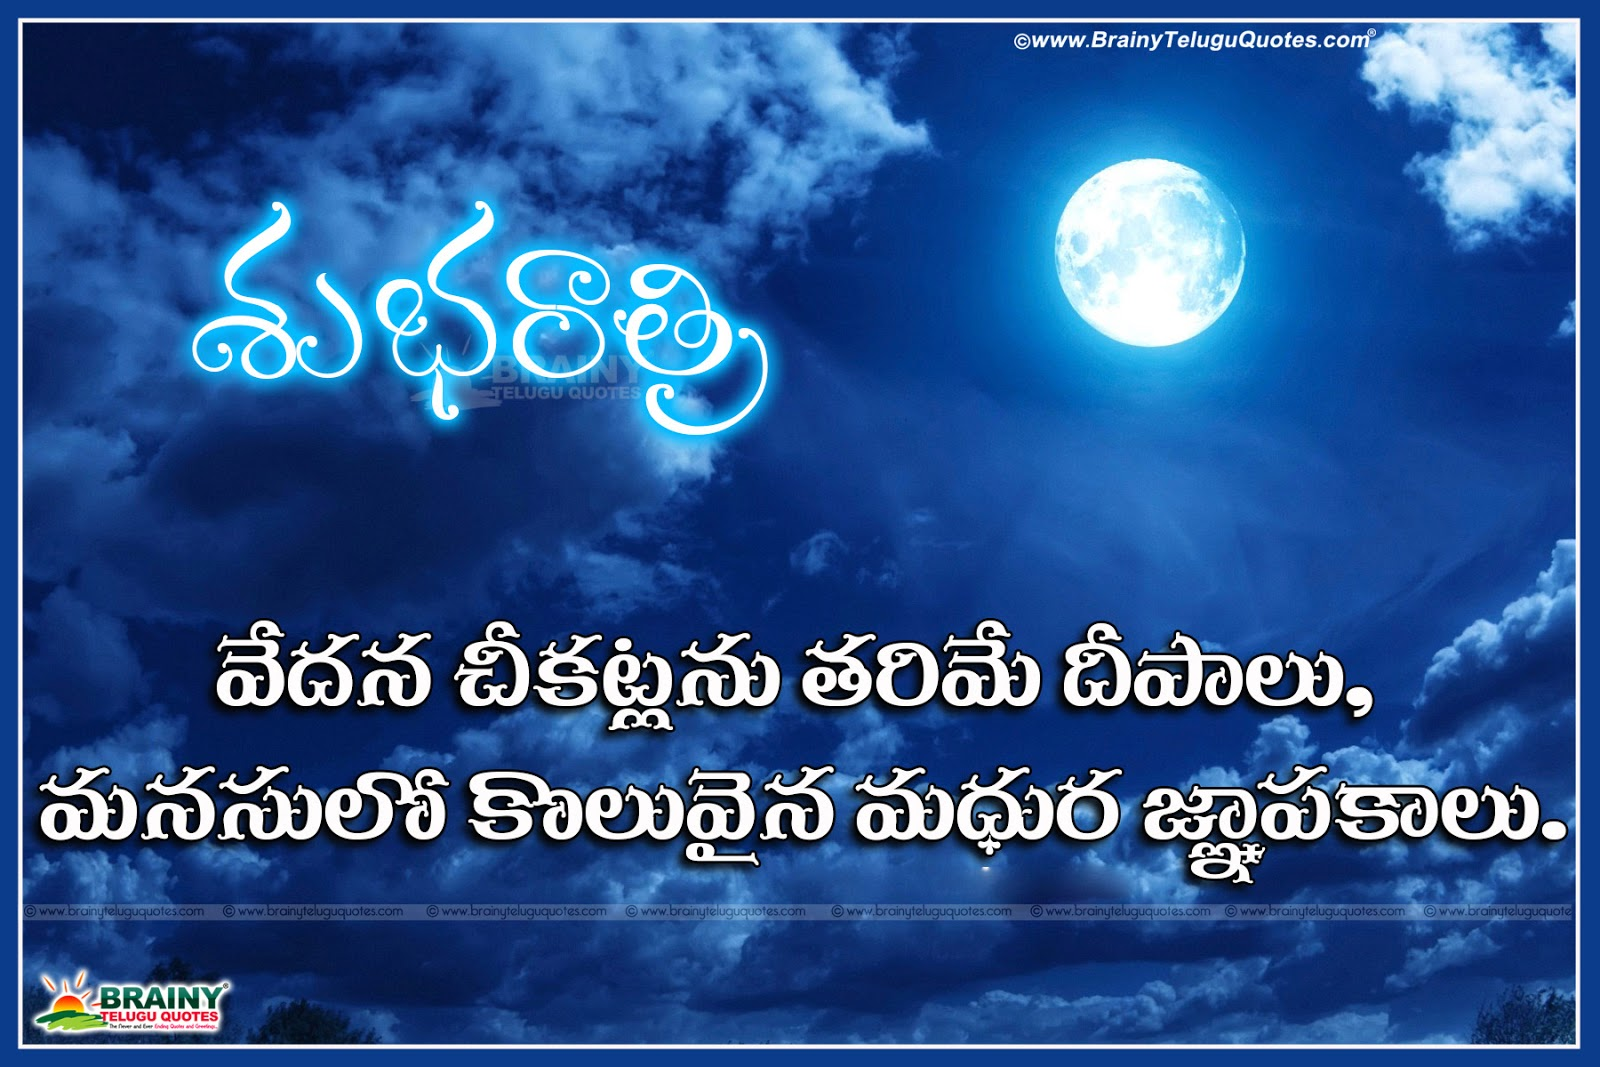 Best Telugu Good Night Greeting Cards With Quotes Images